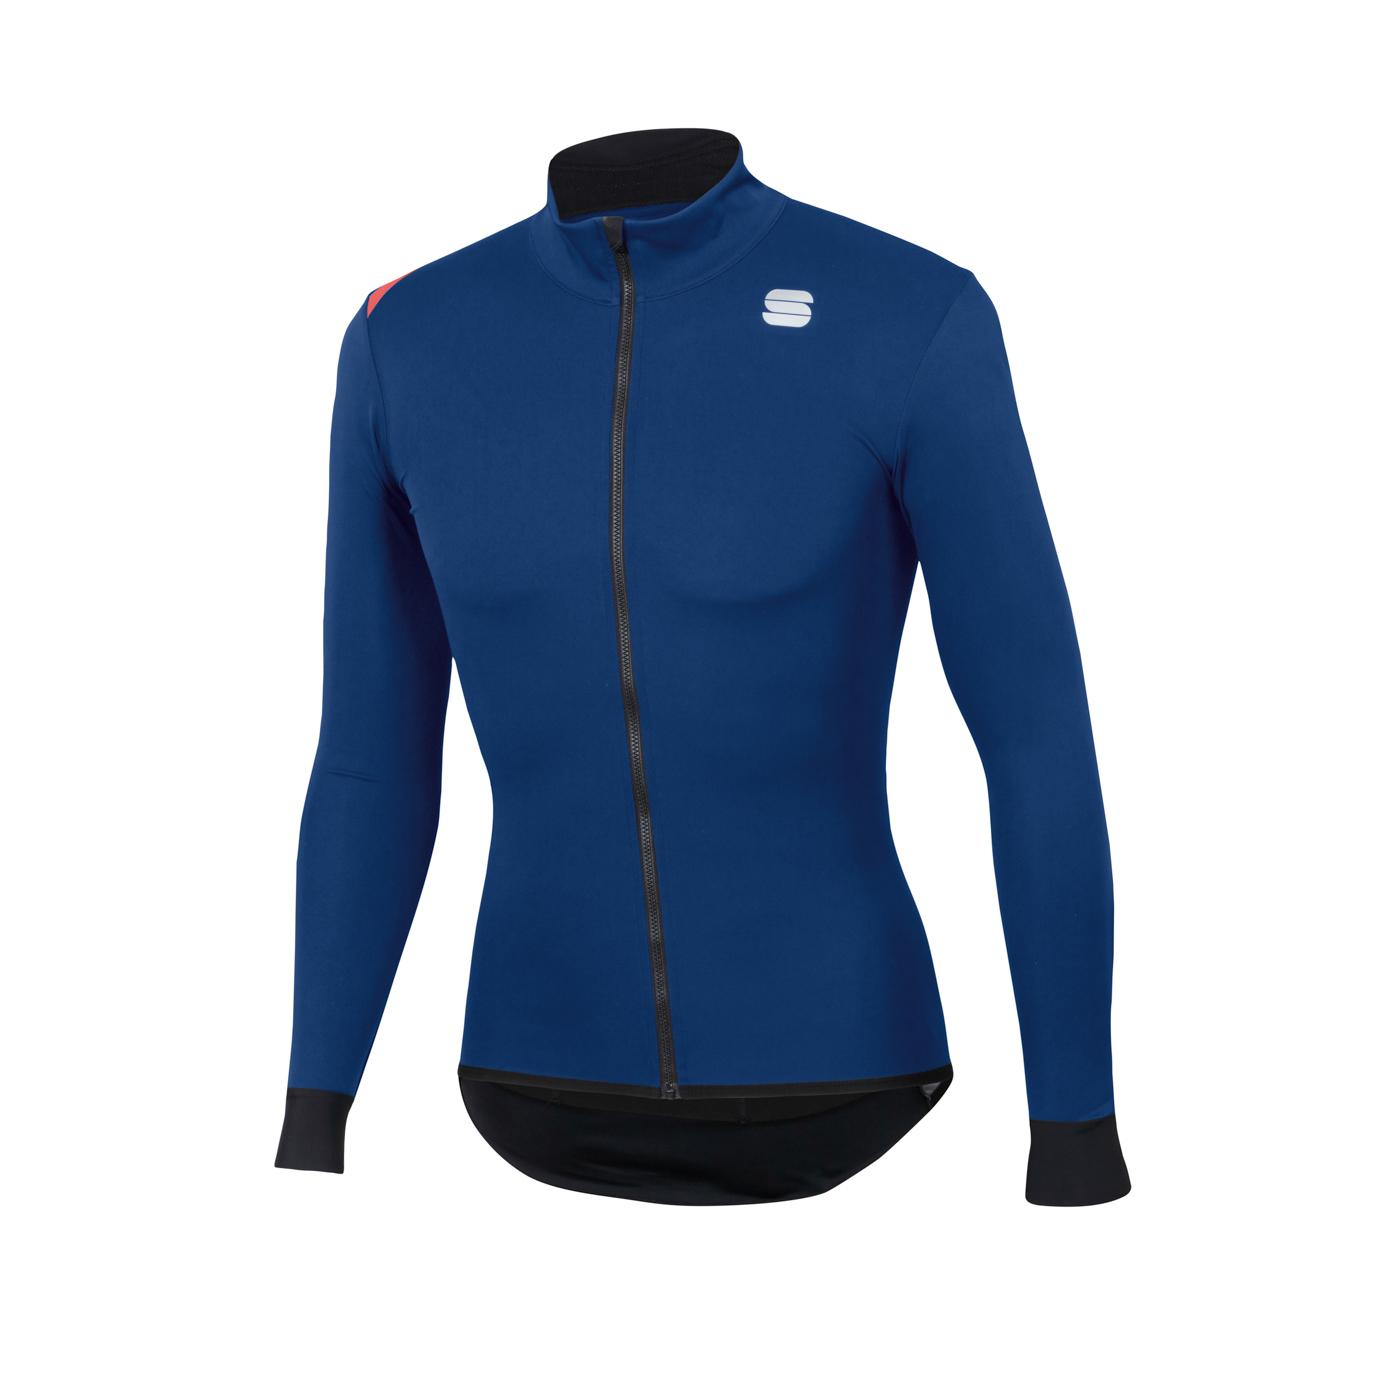 Sportful Fietsjack Lange mouwen Zeer sterk waterafstotend voor Heren Blauw - SF Fiandre Light No Rain Jacket-Blue Twilight